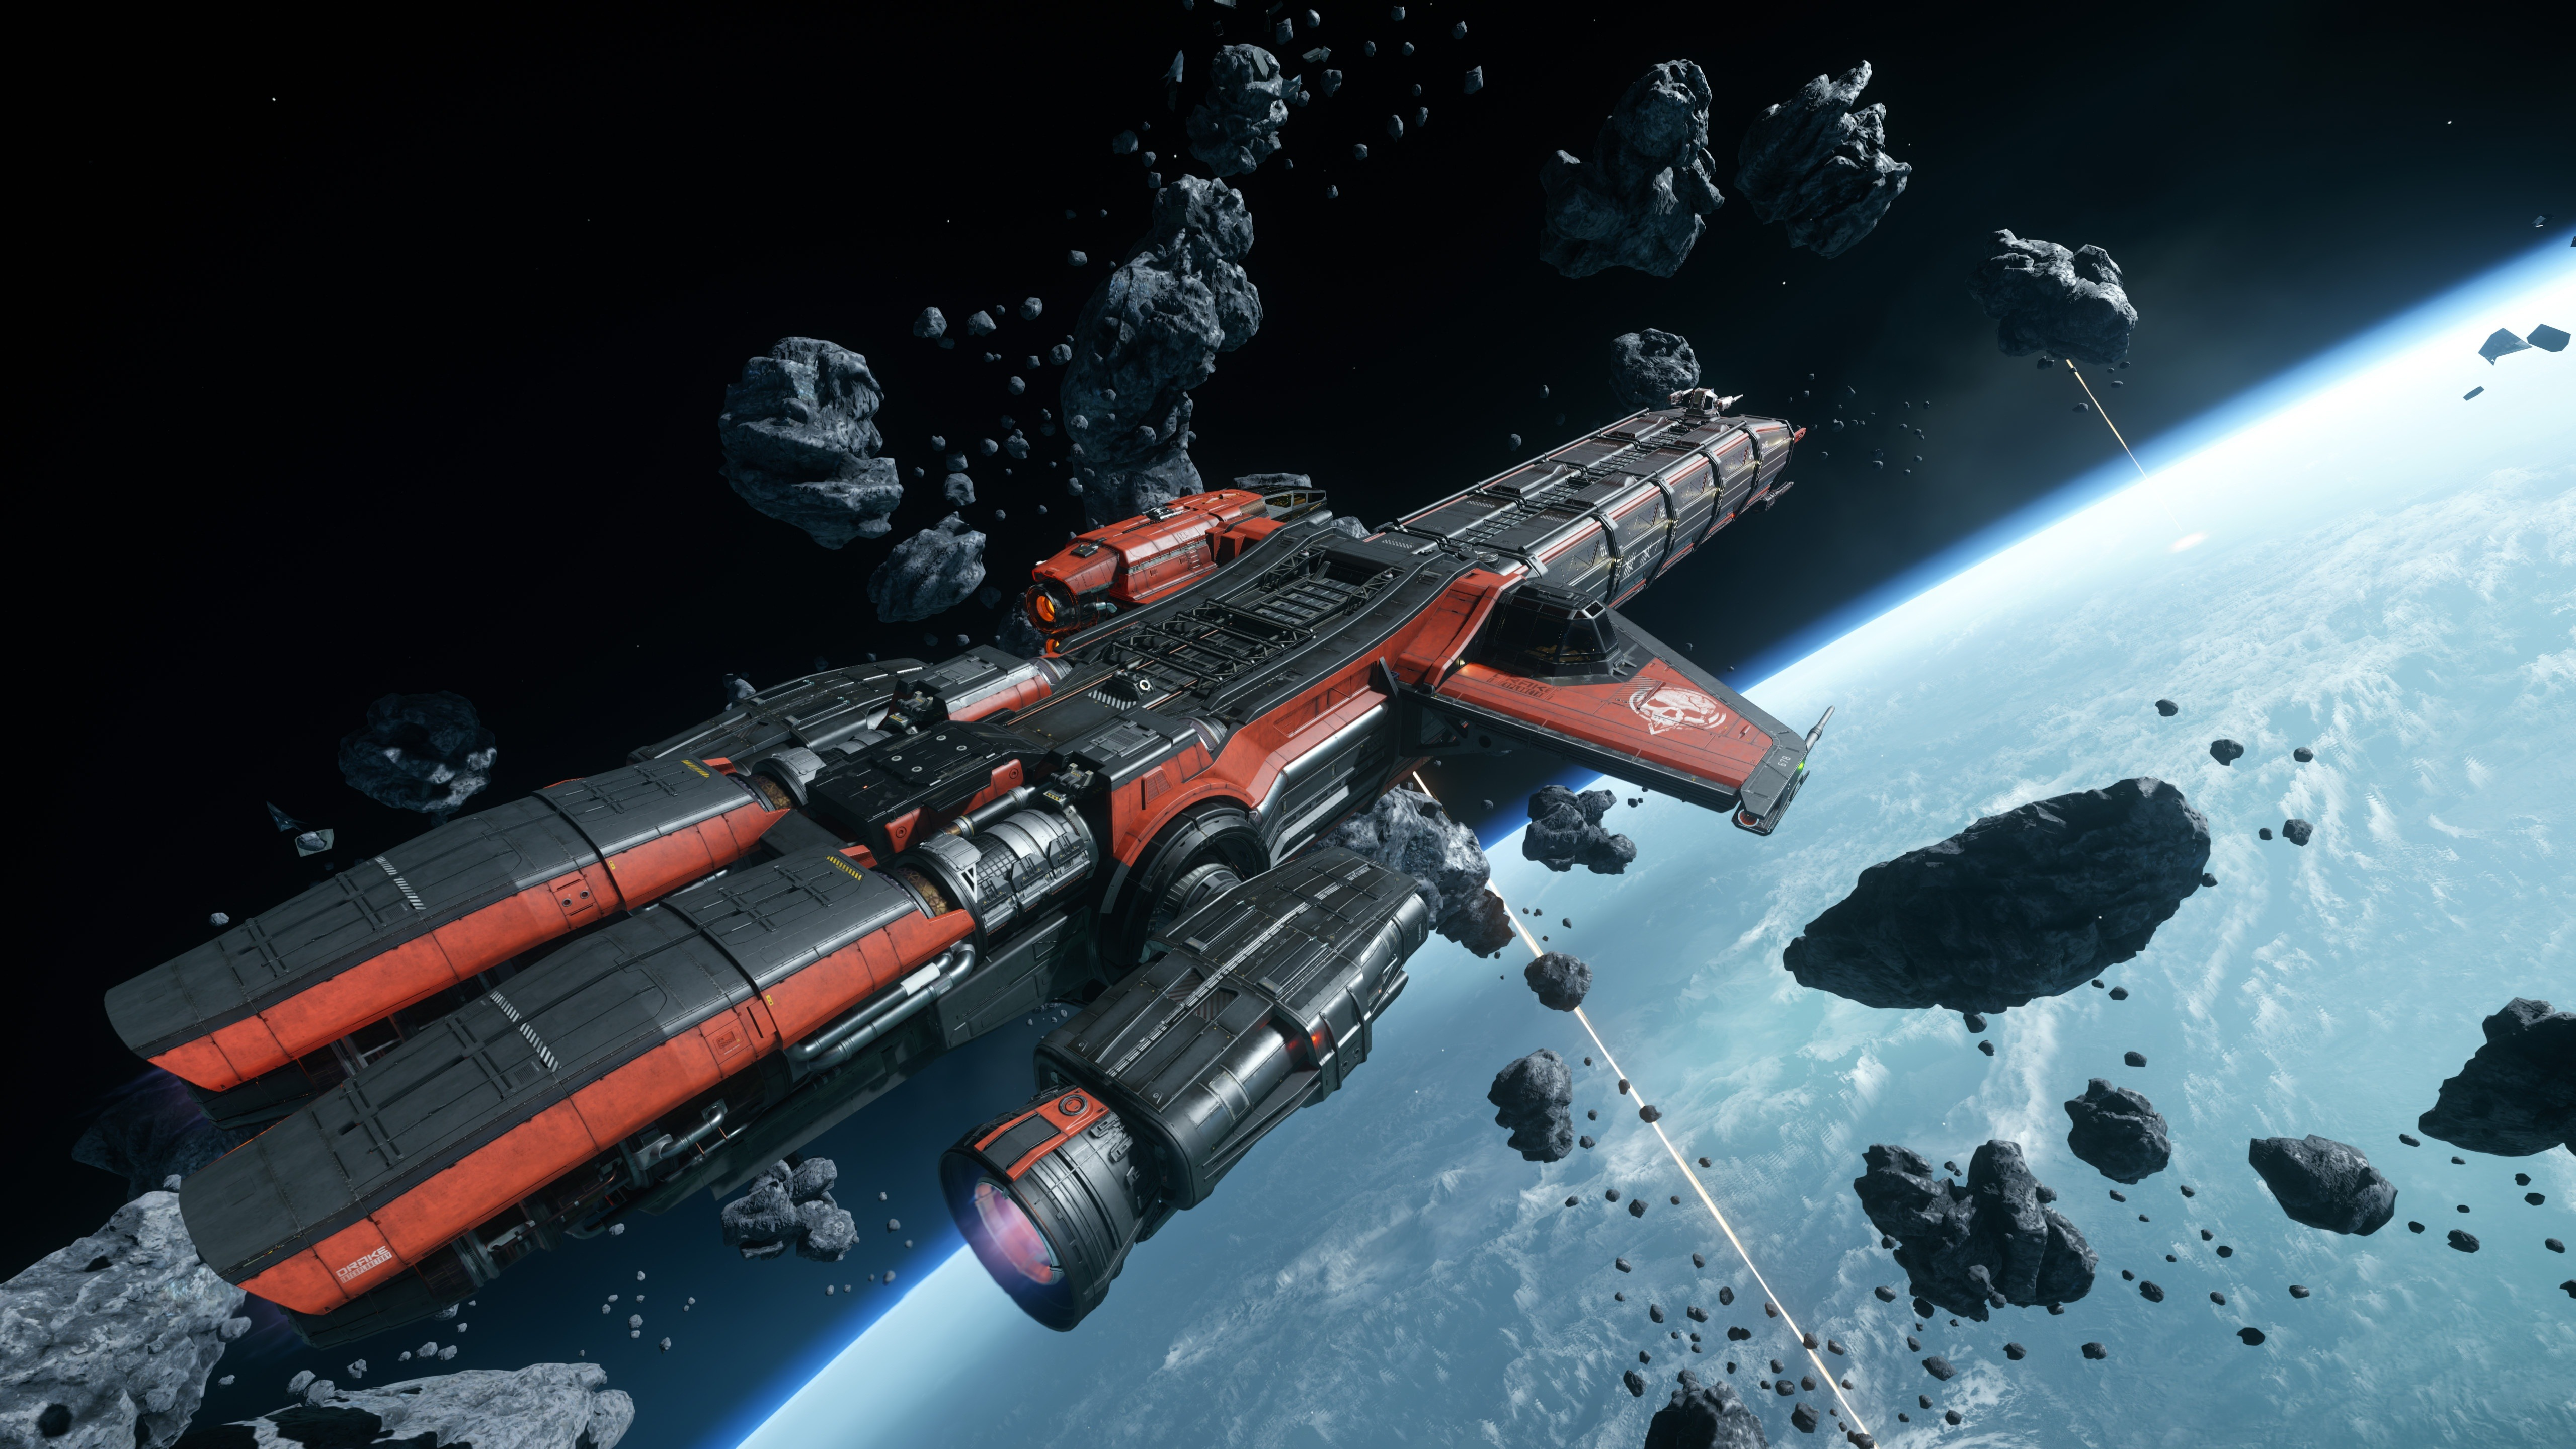 Star Citizen Hd Wallpapers And Background Images - Star Citizen Hd 4k , HD Wallpaper & Backgrounds